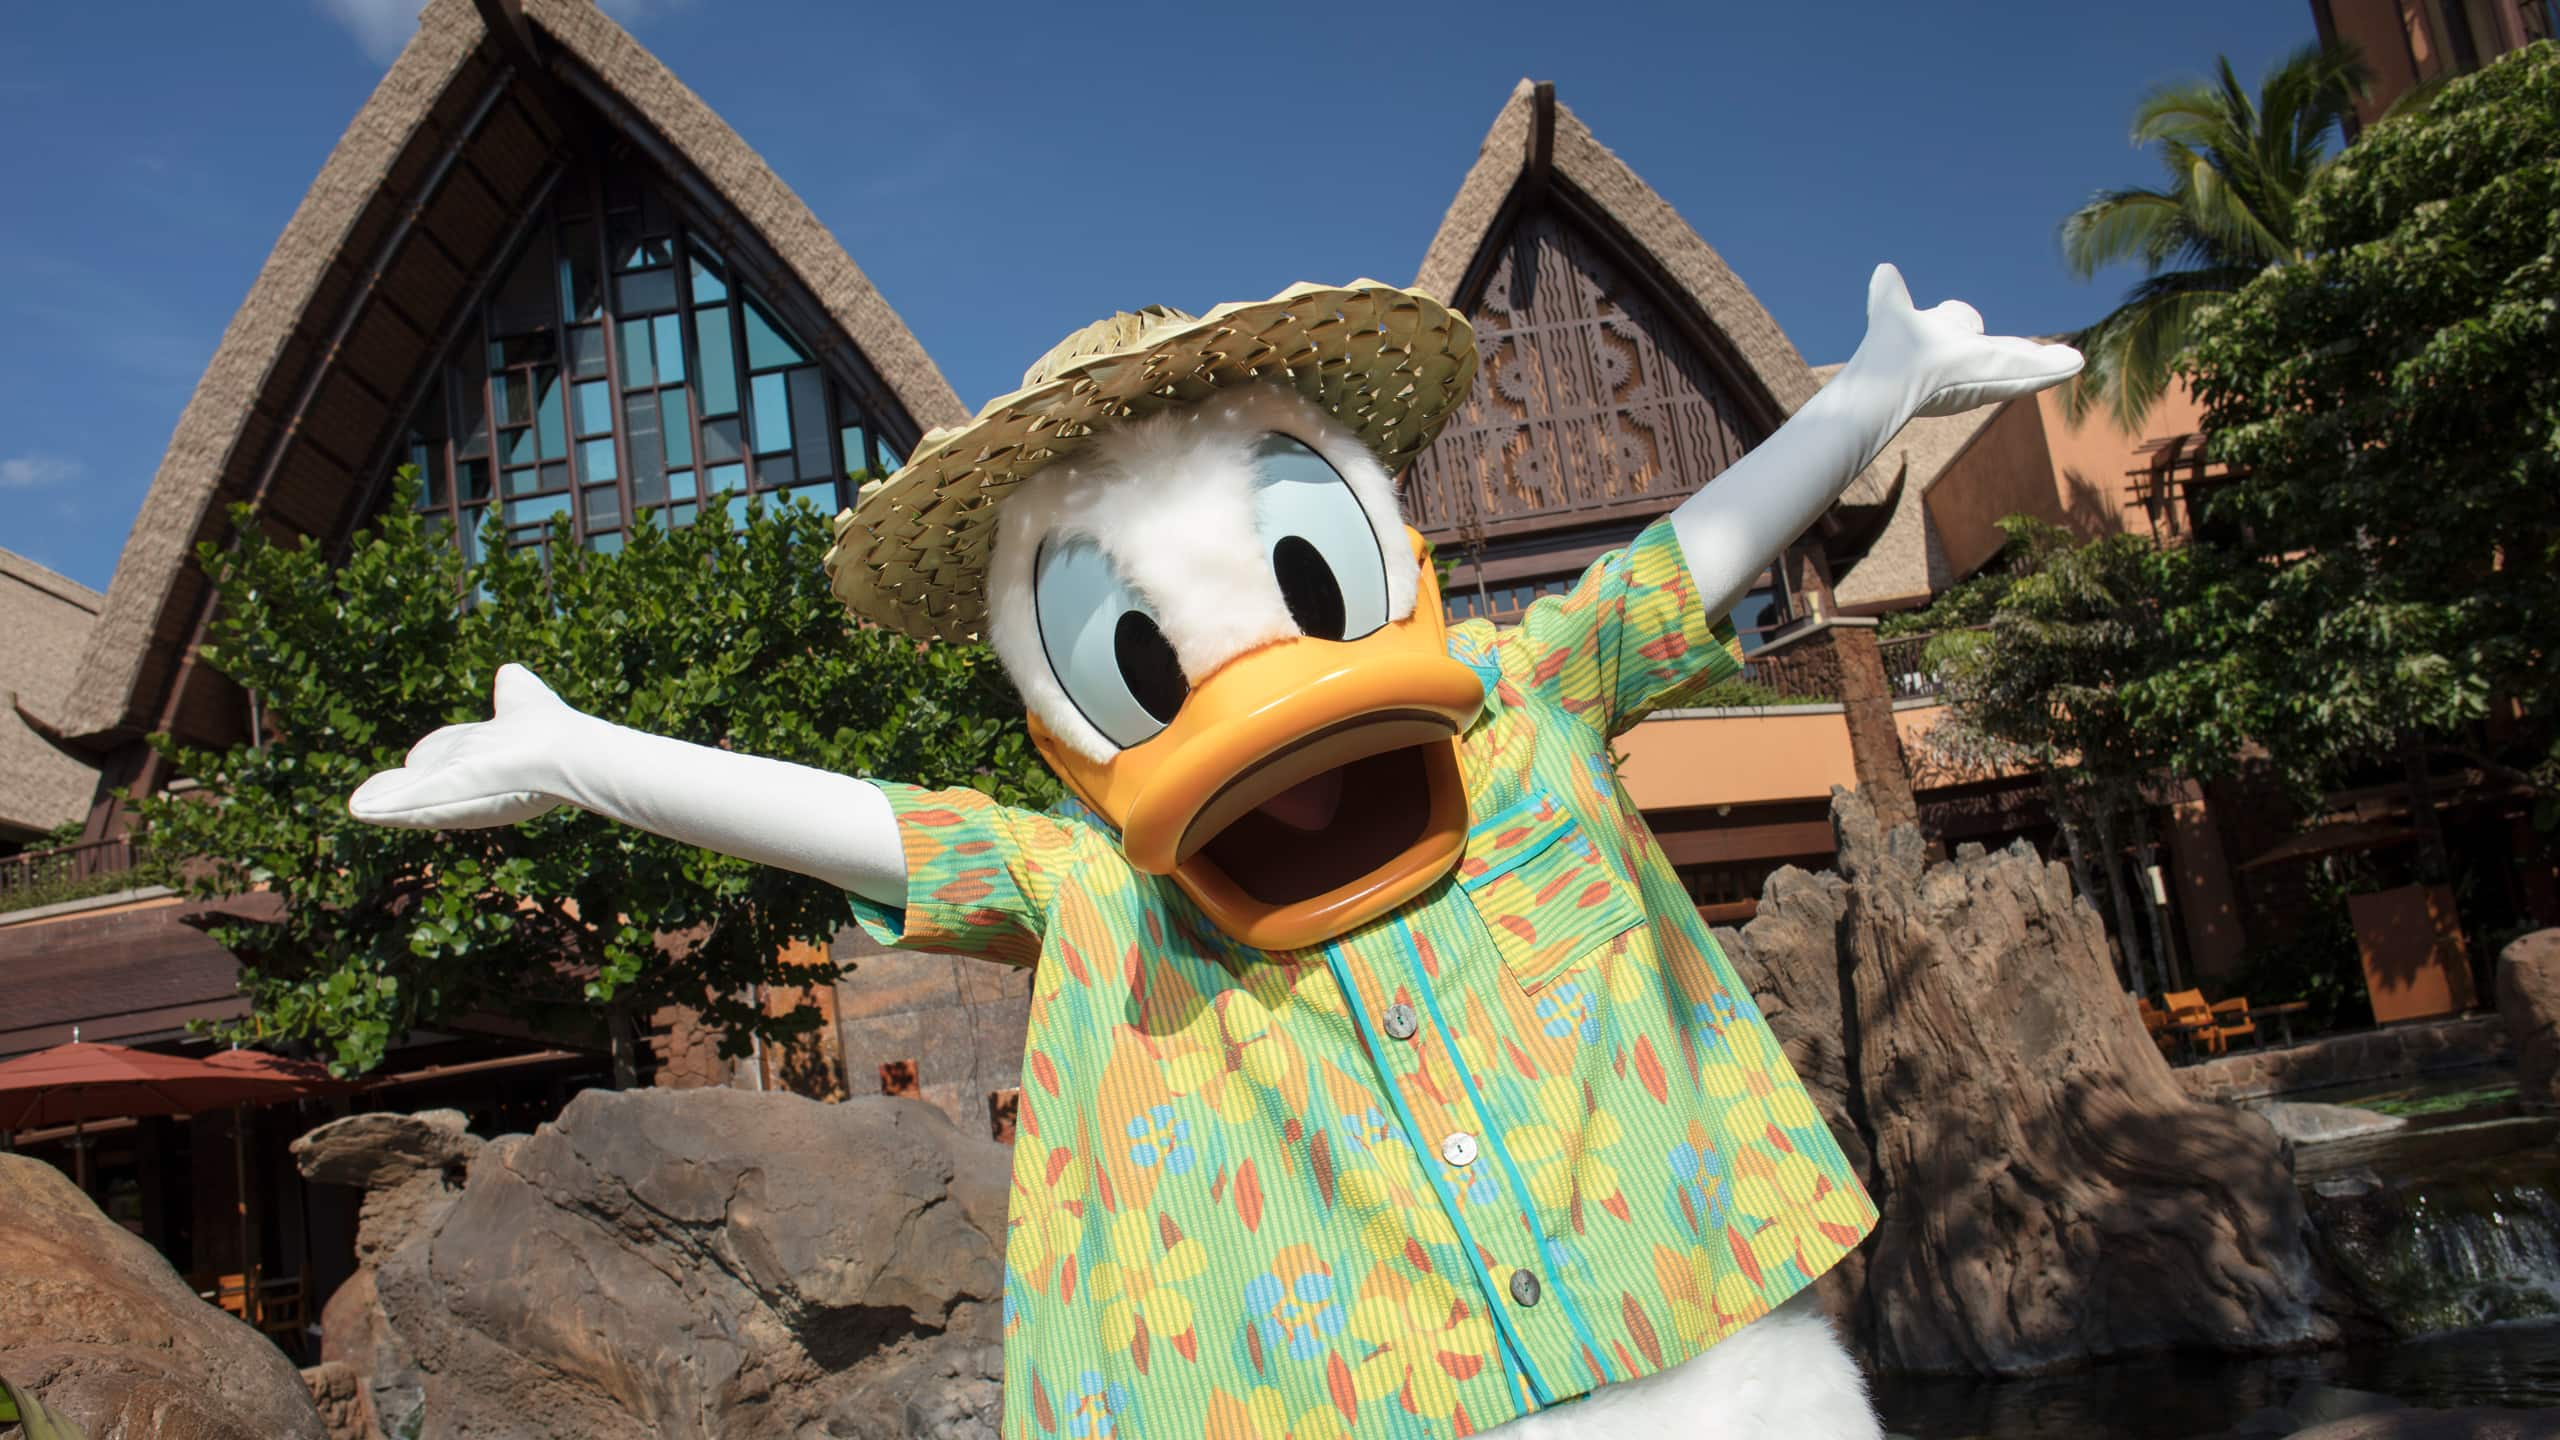 Donald Duck, in a Hawaiian outfit with arms outstretched, in front of the main entrance to Aulani Resort